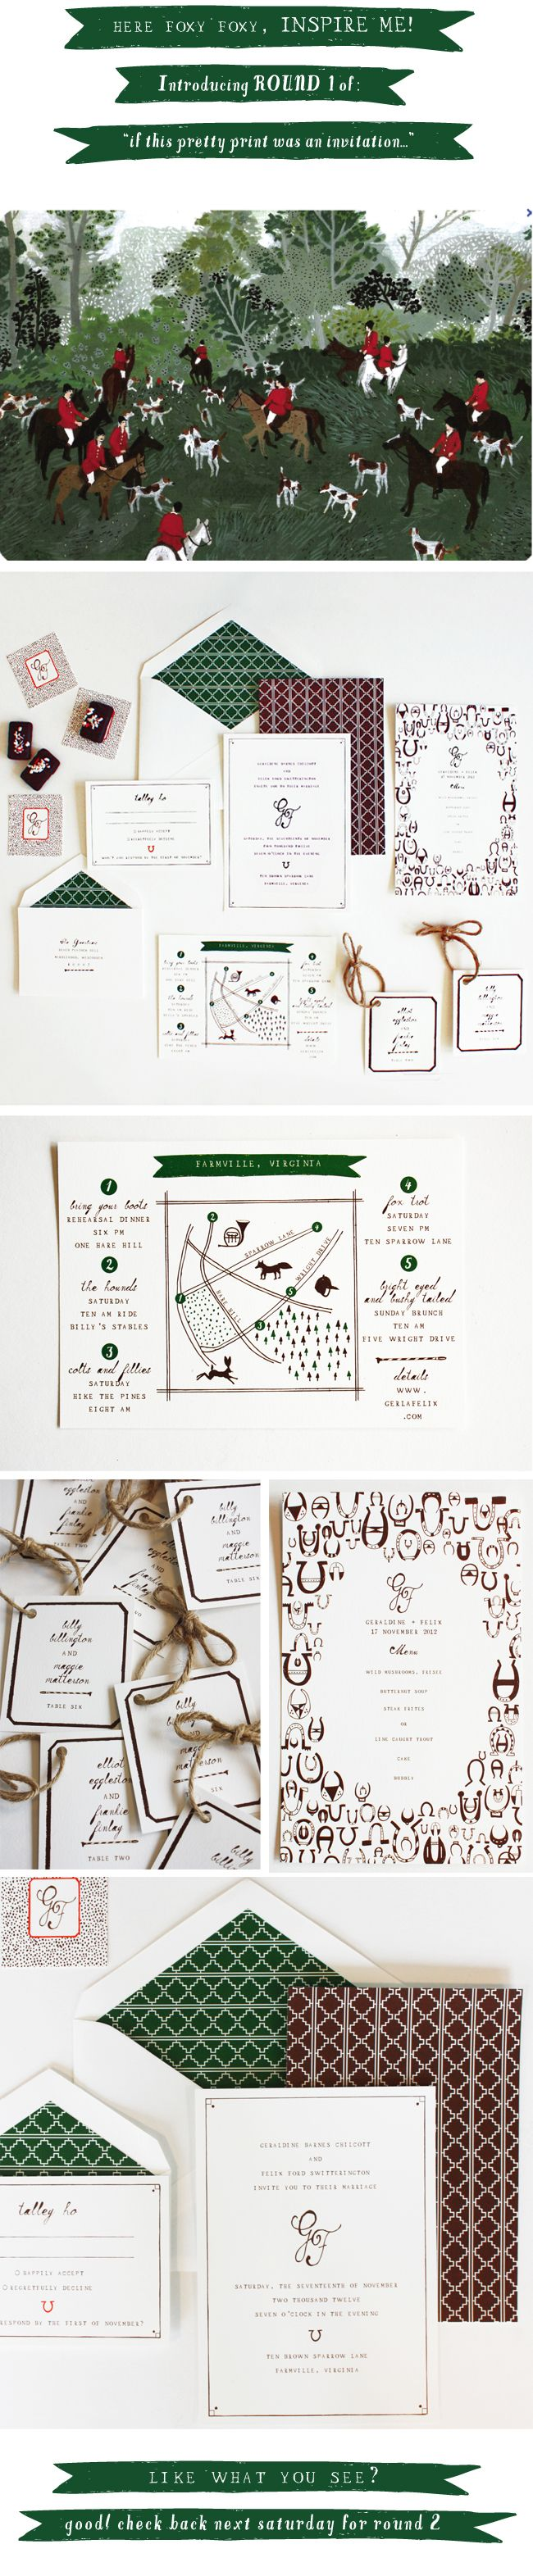 Mr. Boddington foxhunting motif personal stationary. Send out a festive invitation to your party.